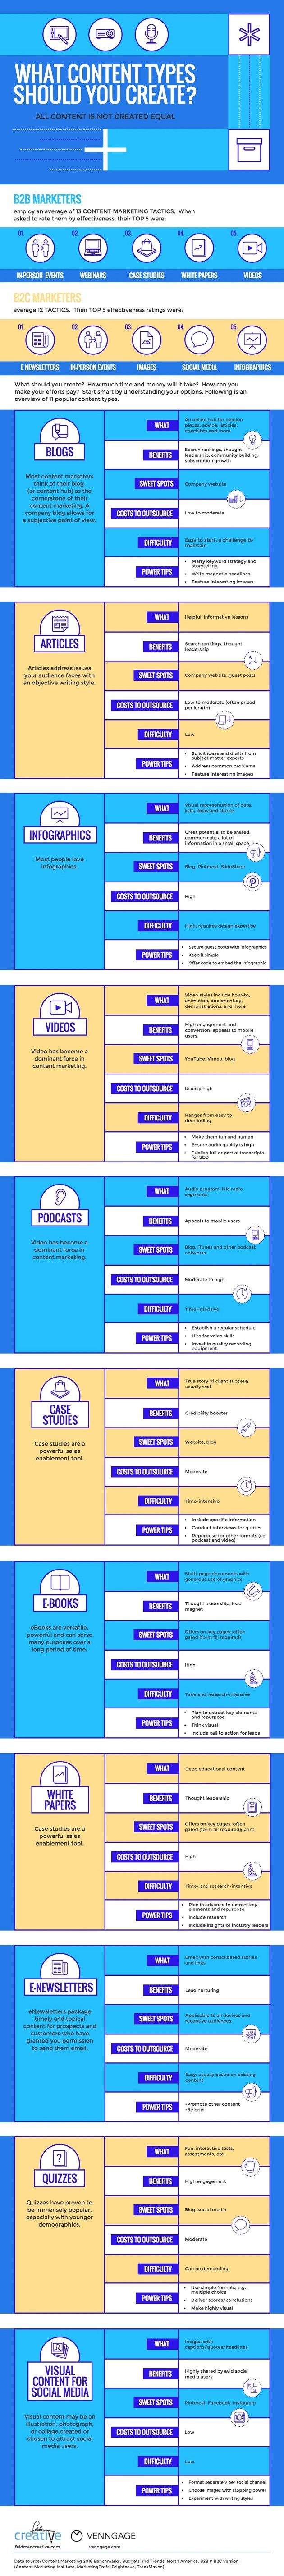 Determining what kinds of content your brand should create can be perplexing. The following infographic can help you make that decision.